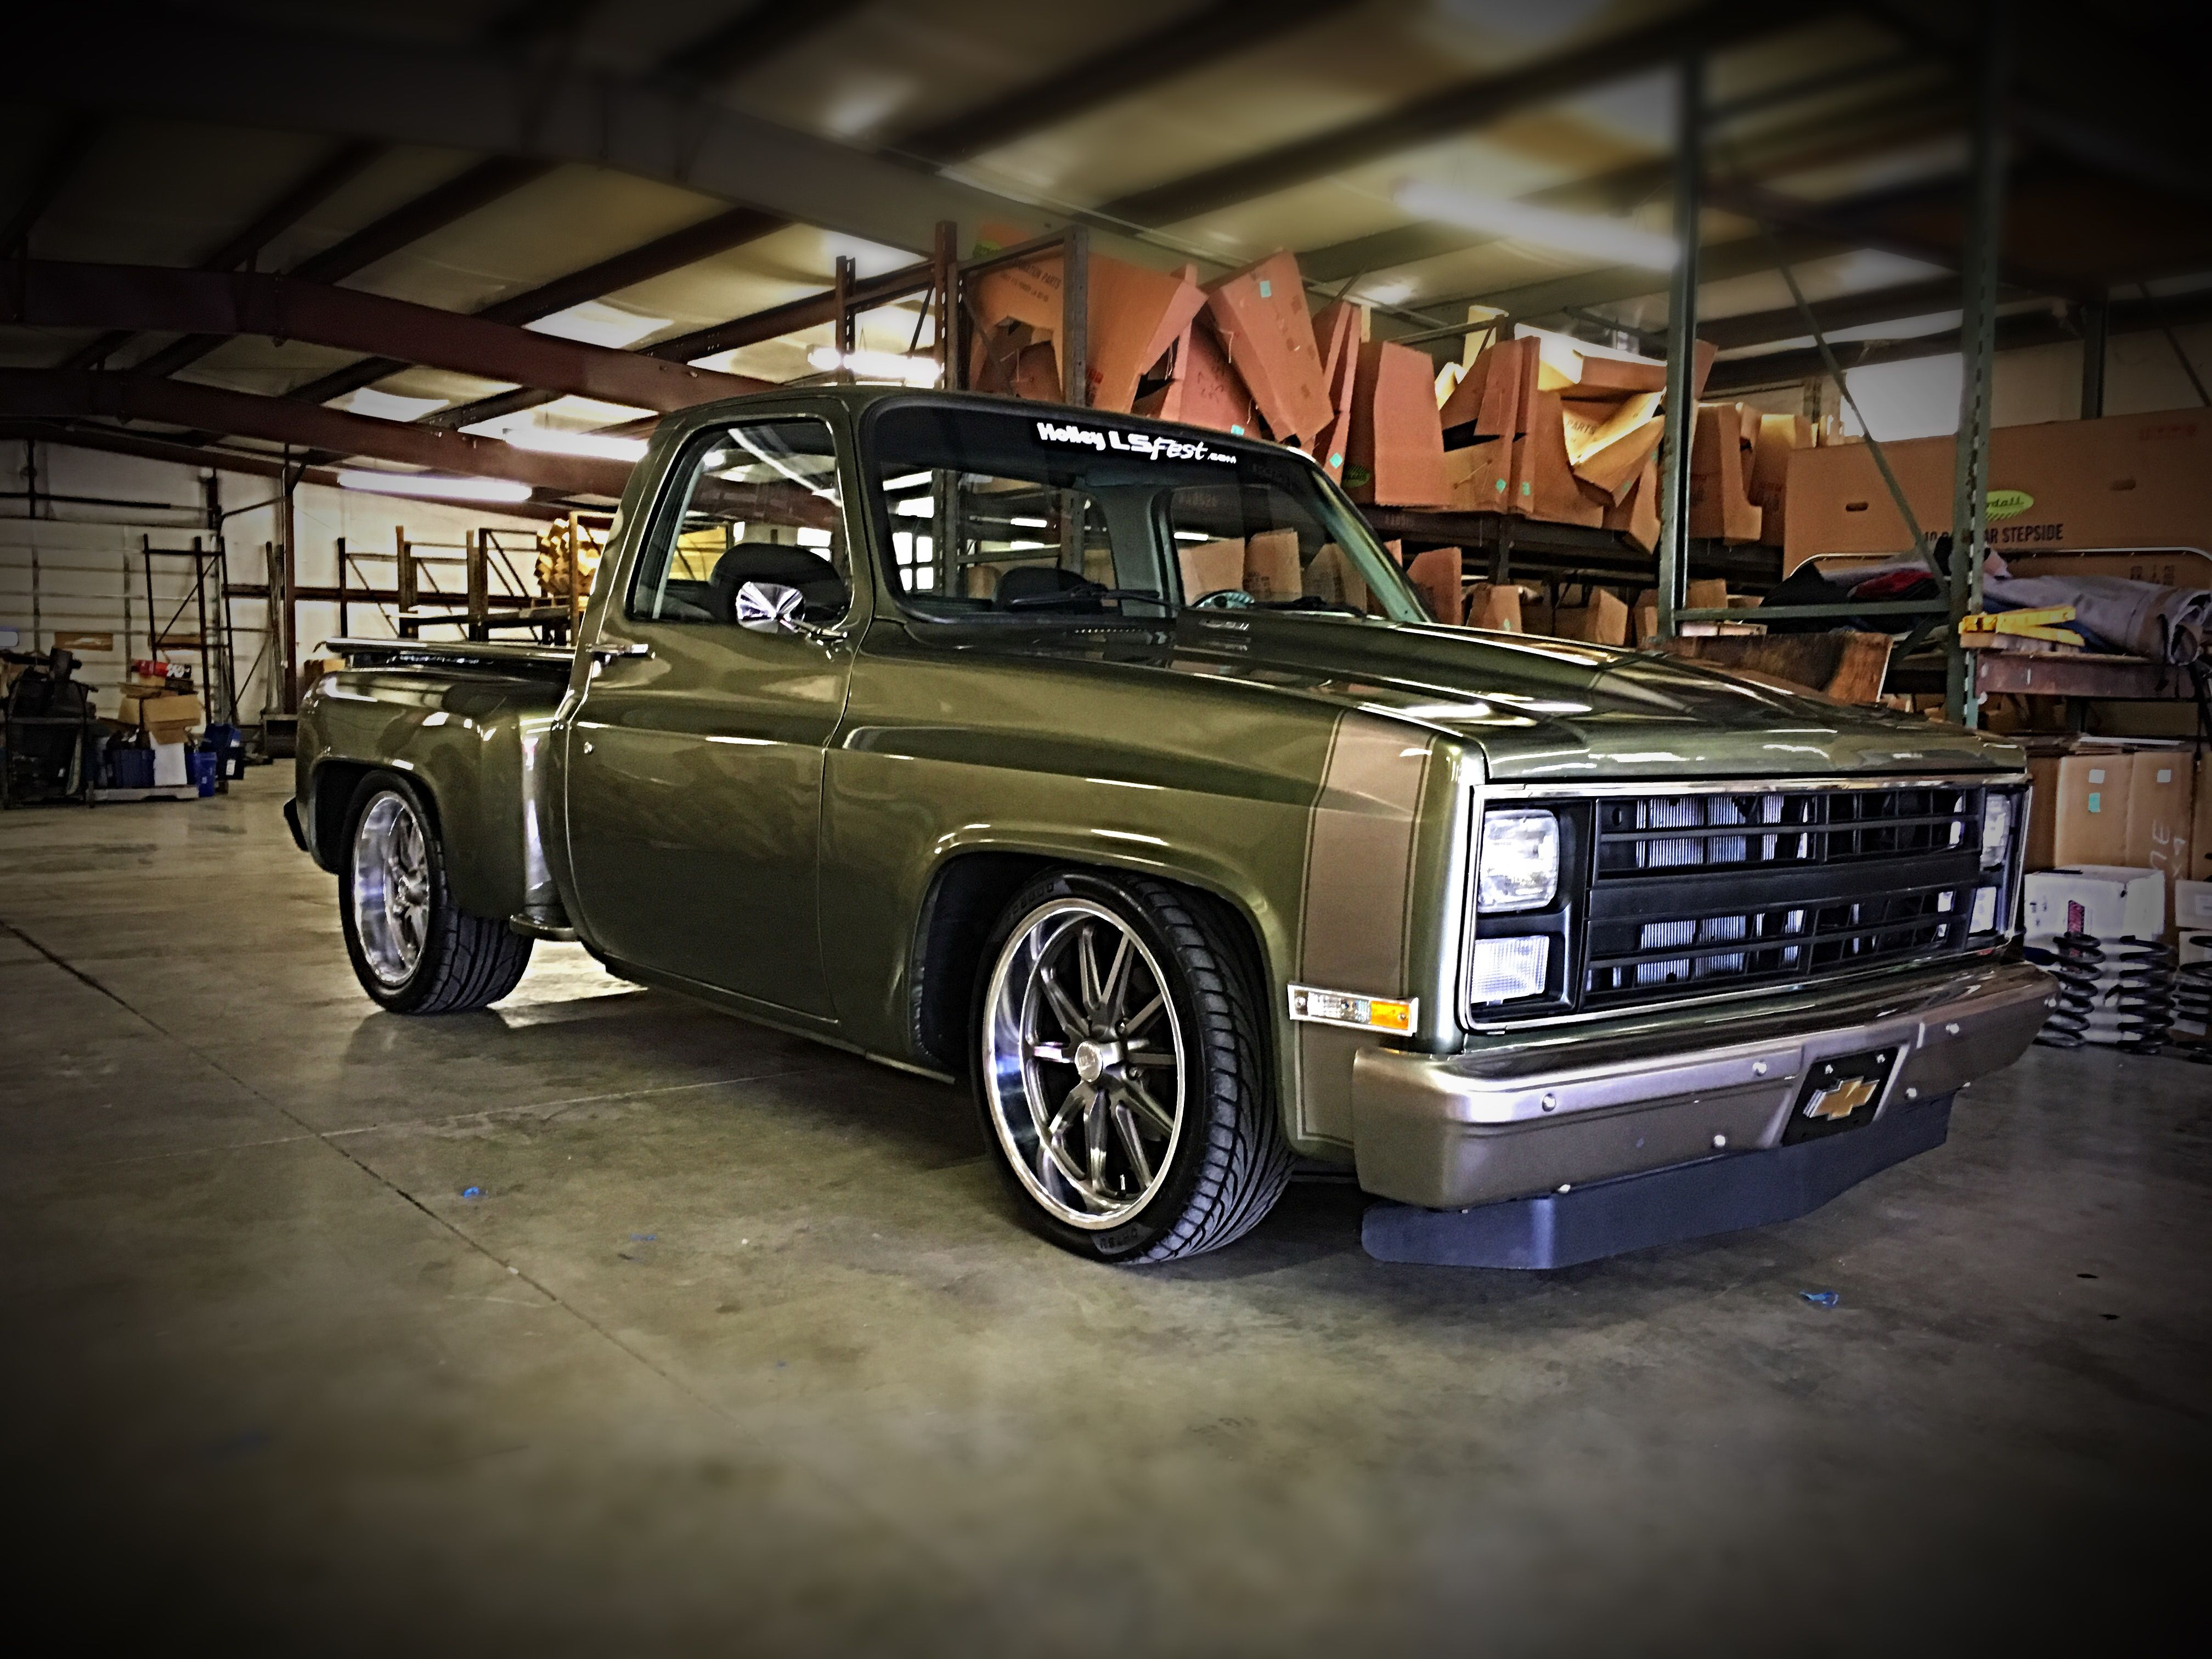 S10 Square Body C10 - Year of Clean Water